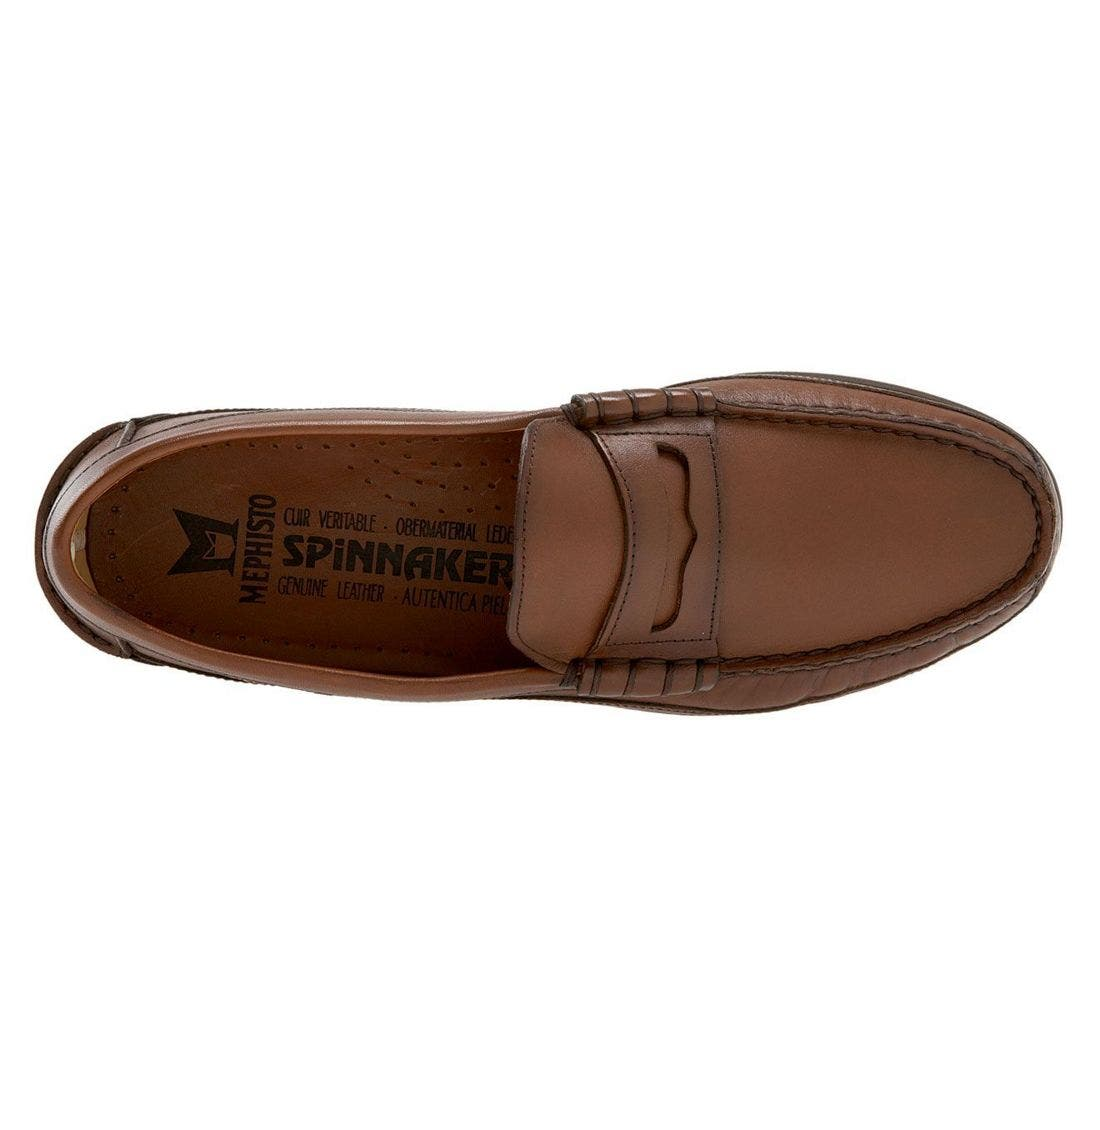 MEPHISTO, 'Cap Vert' Penny Loafer, Alternate thumbnail 3, color, Rust Leather